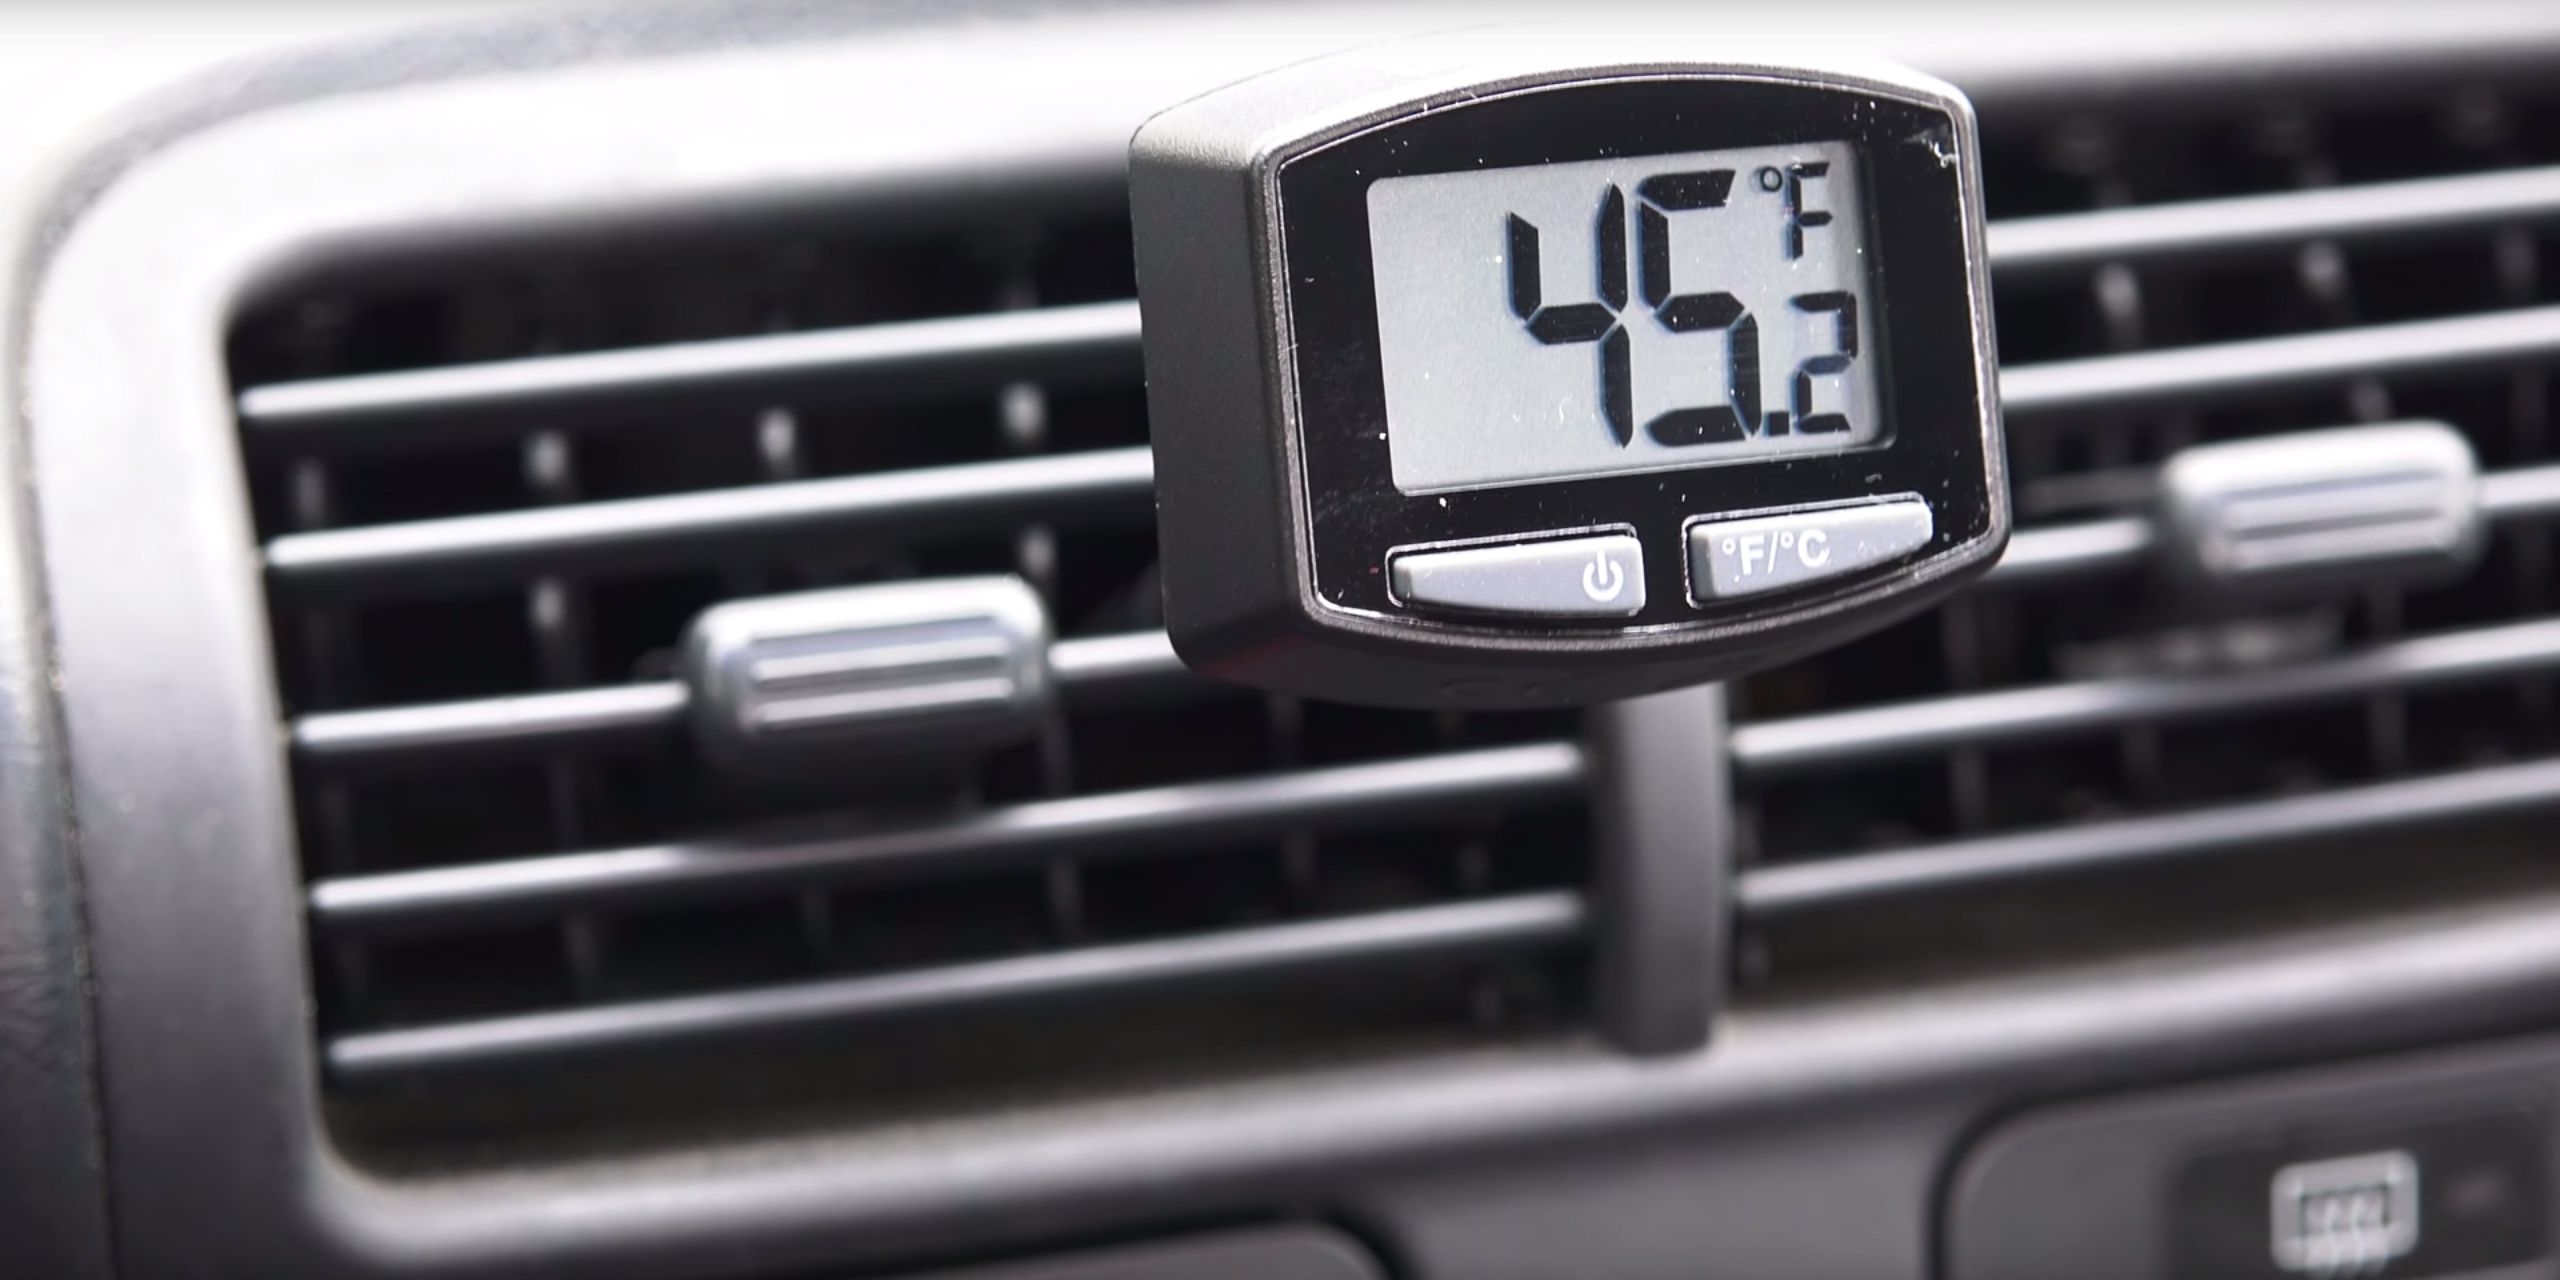 Car Air Conditioning Repair Tips - How to Use an Auto Air Conditioning  Recharge Kit